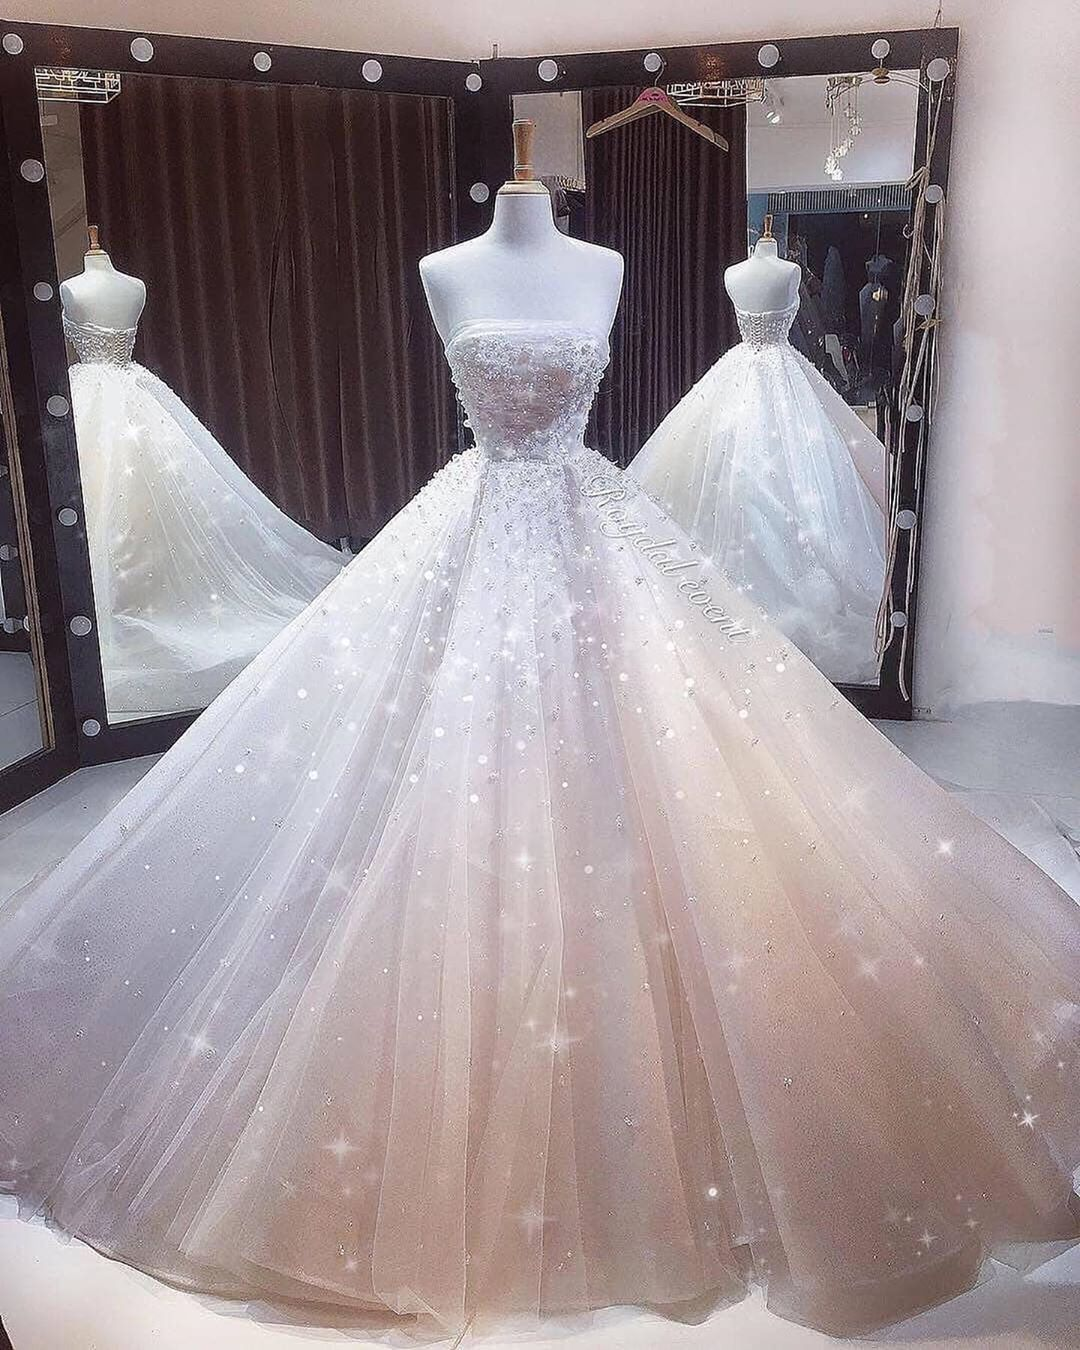 1 10 Best Inspiration Page For Dresses Dresses U P Credit Make In 2020 Disney Wedding Dresses Pretty Quinceanera Dresses Ball Gowns Wedding